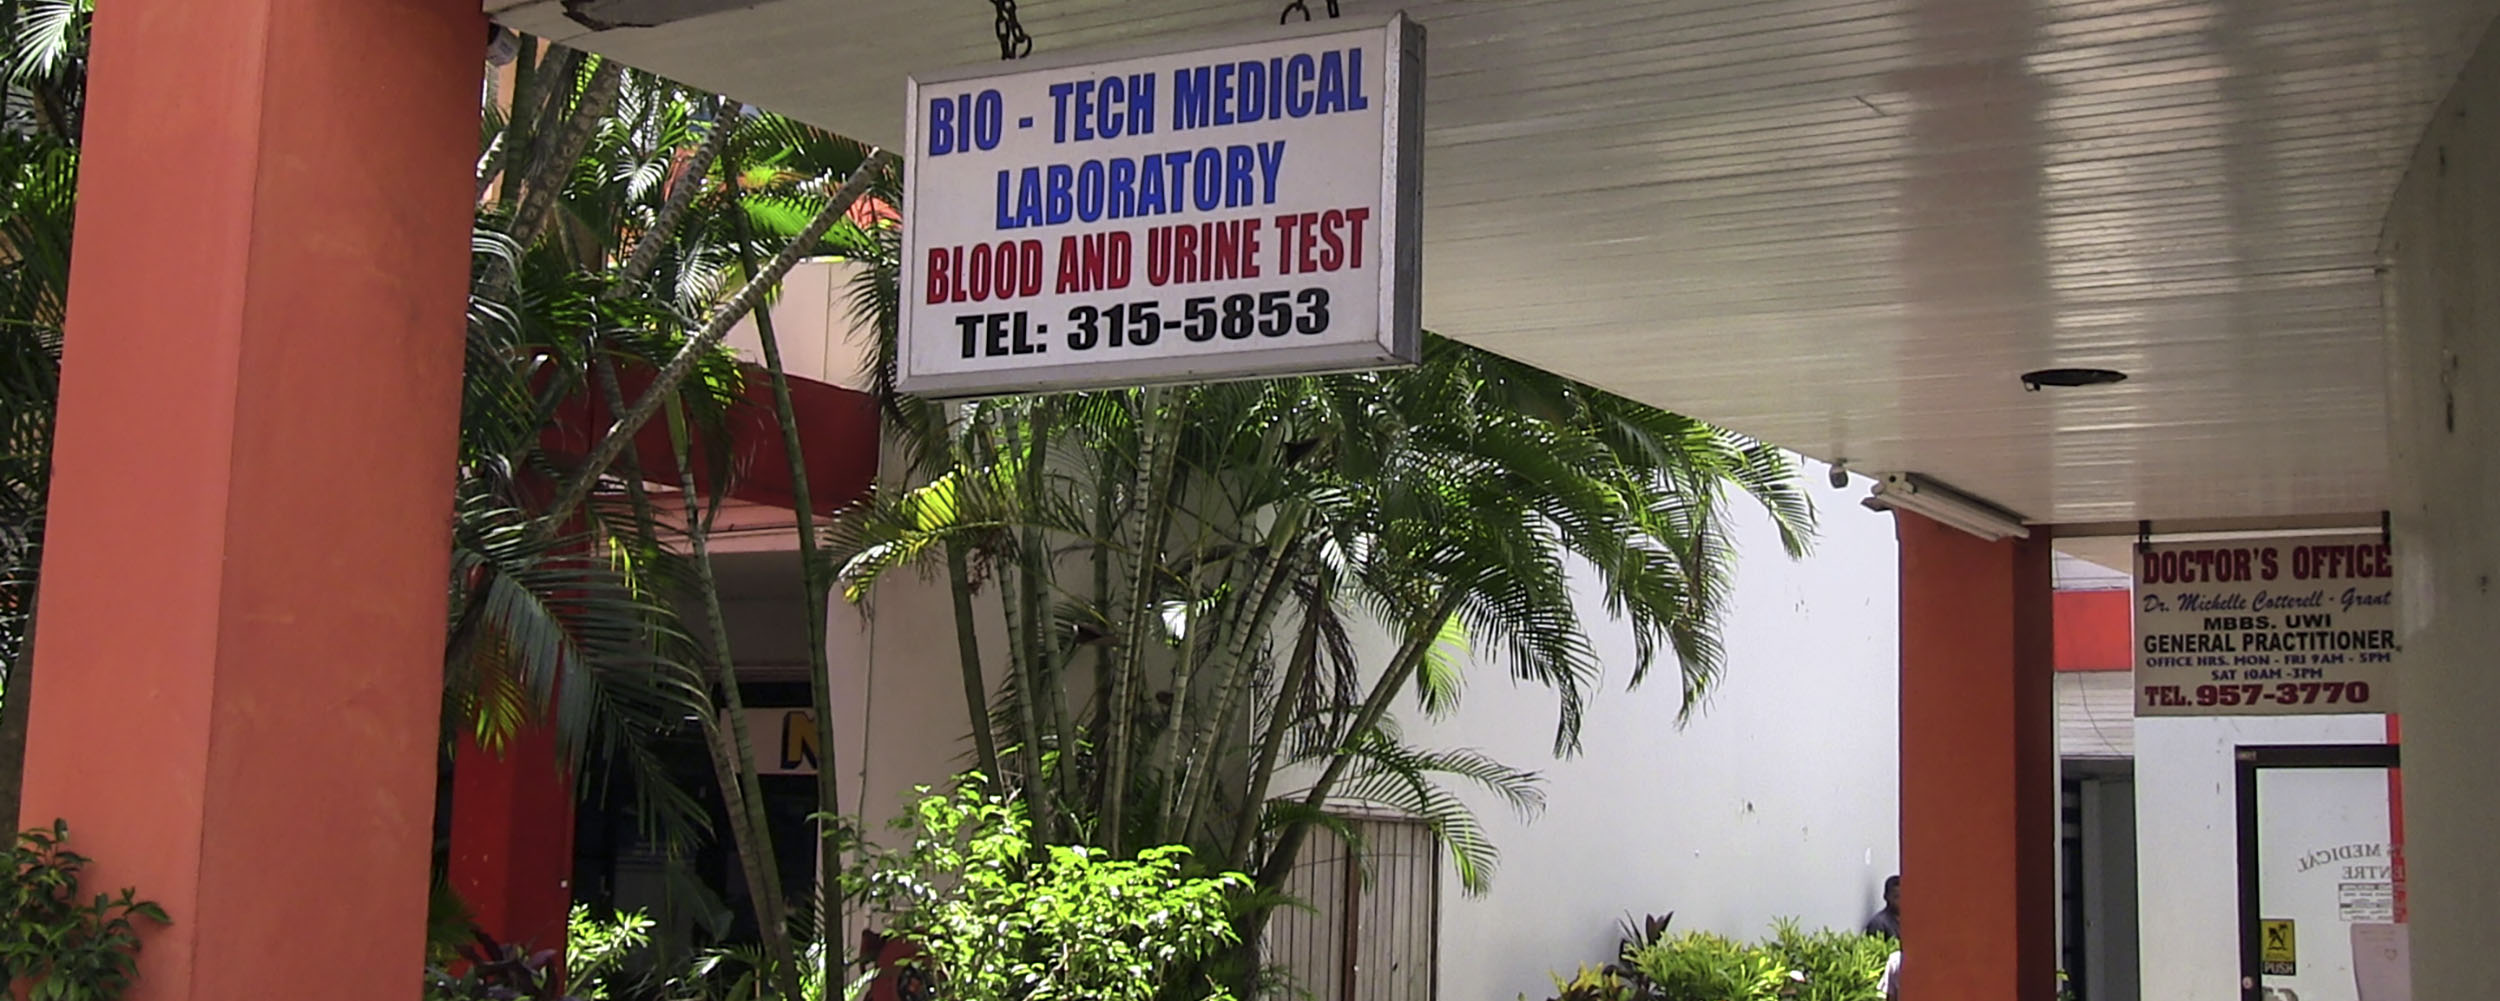 Bio Tech Medical Laboratory - Sunshine Village Complex - West End Road - Negril Jamaica